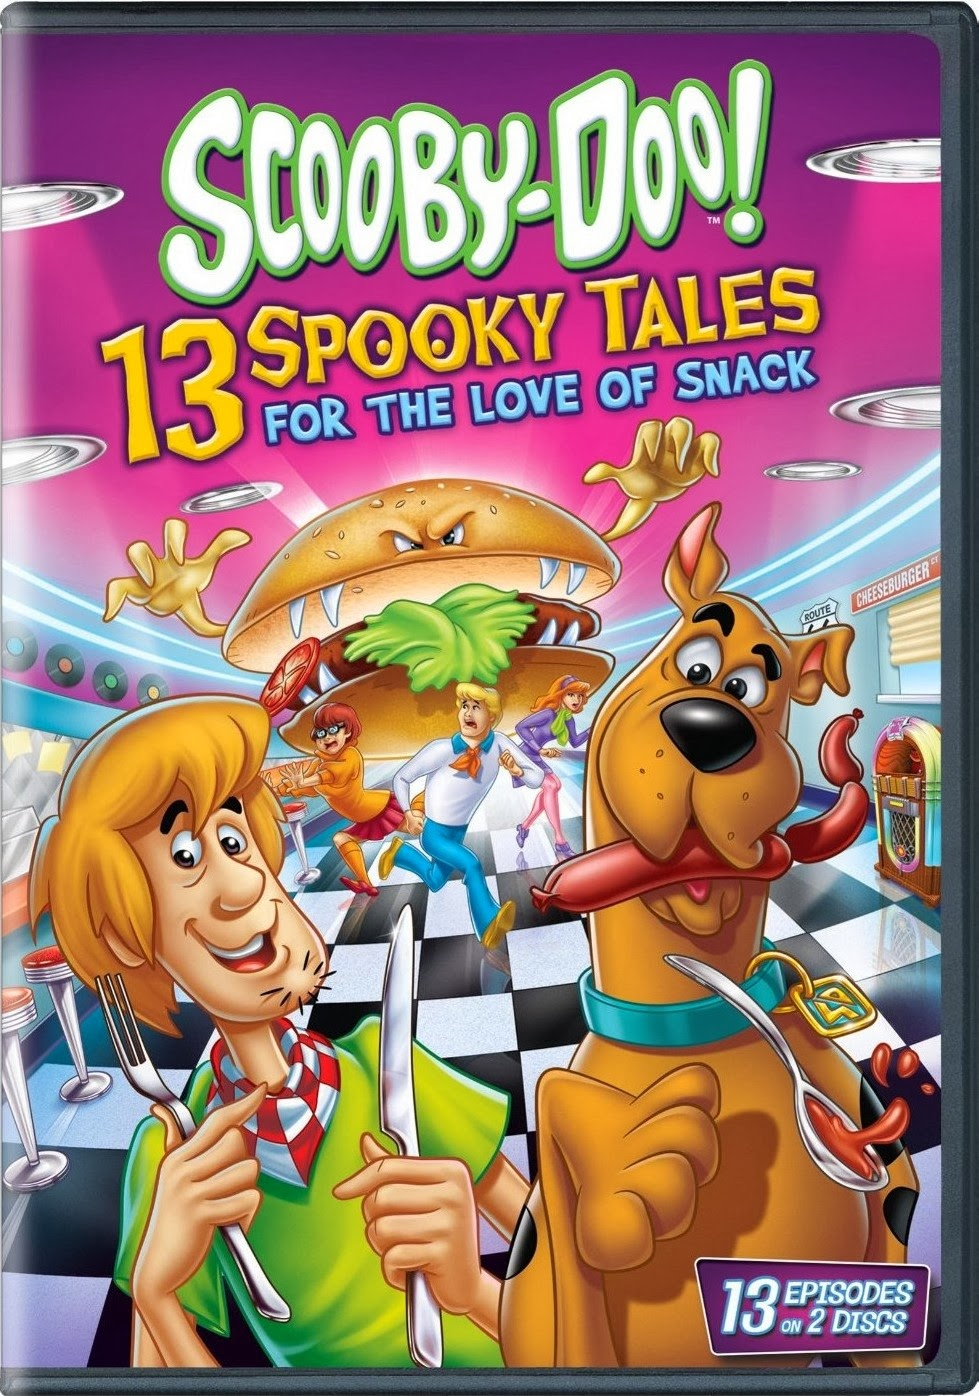 Scooby-Doo! 13 Spooky Tales For The Love of Snack (2014)